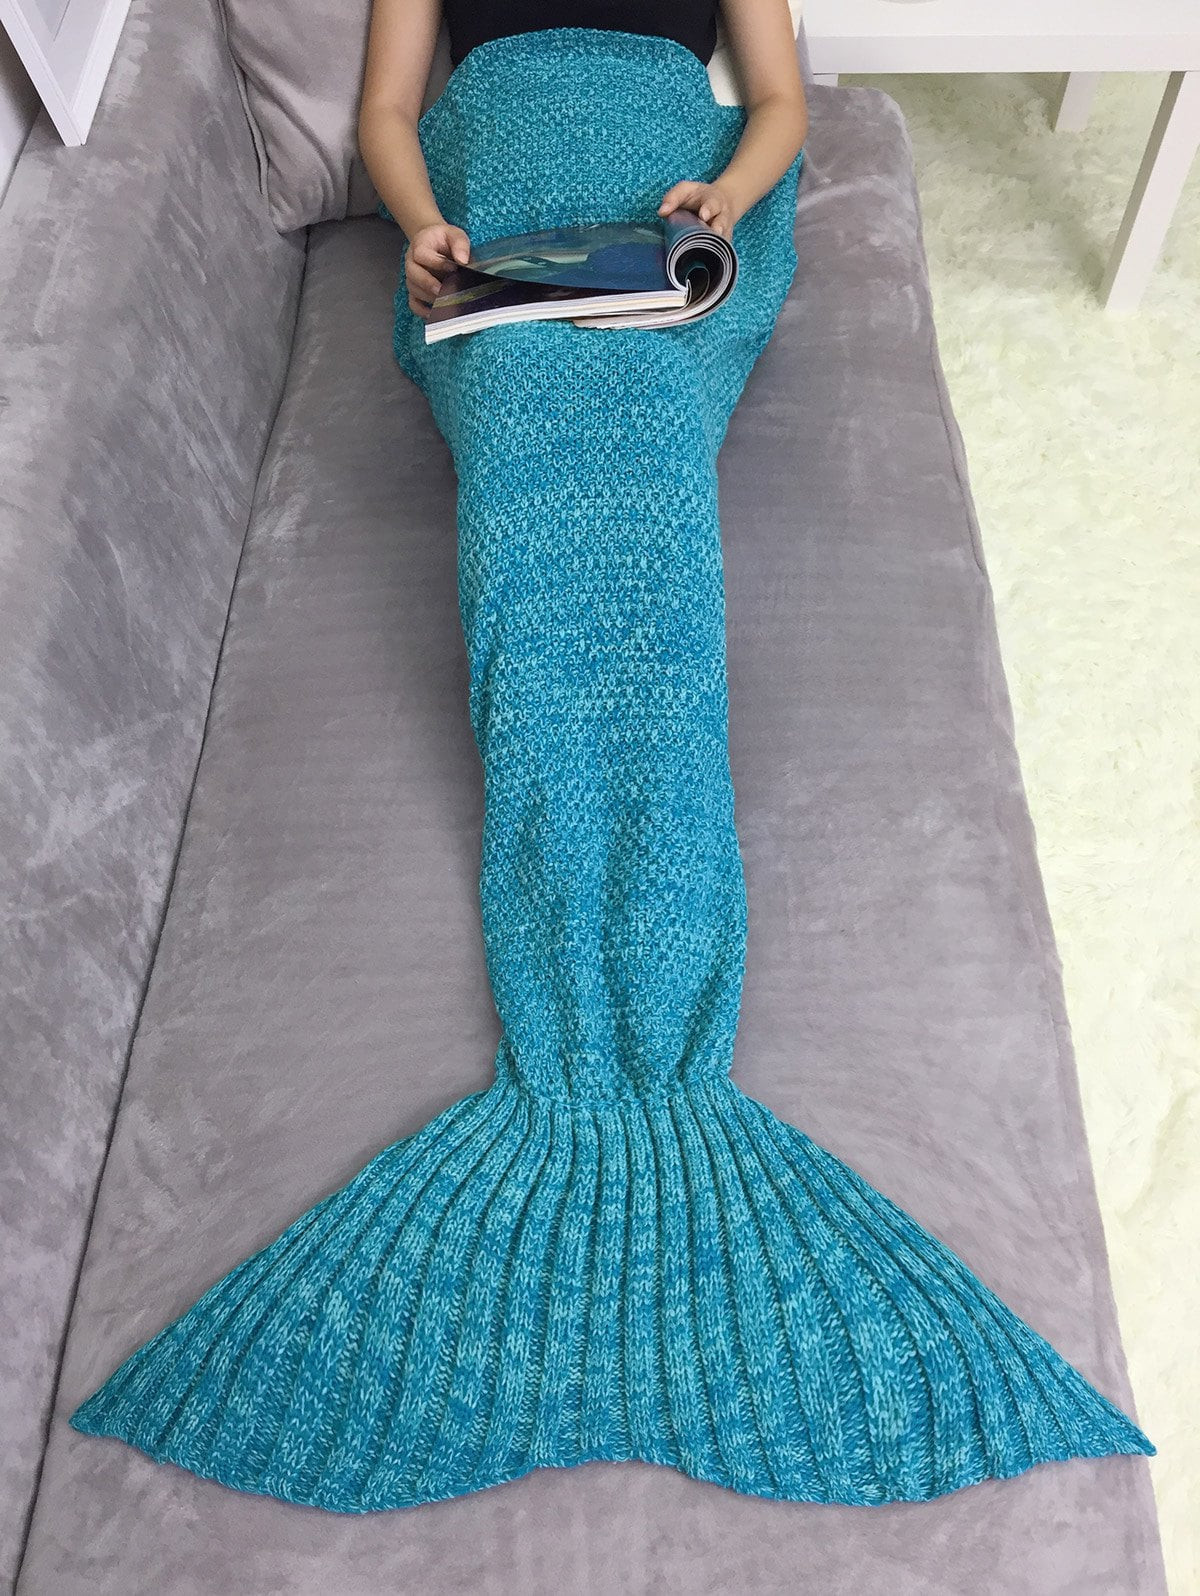 Inspirational 2018 Super soft Acrylic Knitting Mermaid Tail sofa Blanket Knitted Mermaid Blanket Of Great 41 Images Knitted Mermaid Blanket